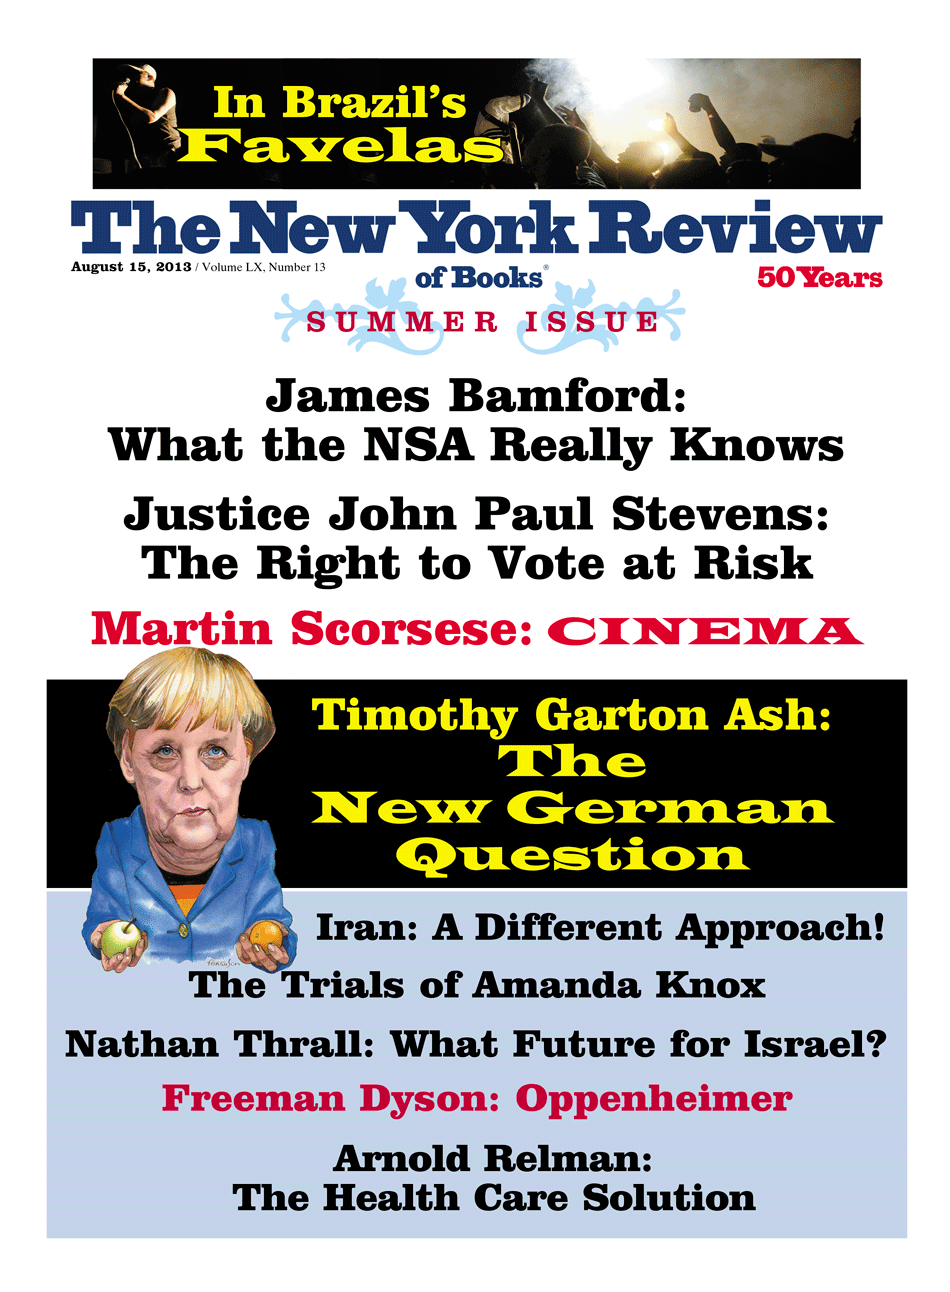 Image of the August 15, 2013 issue cover.